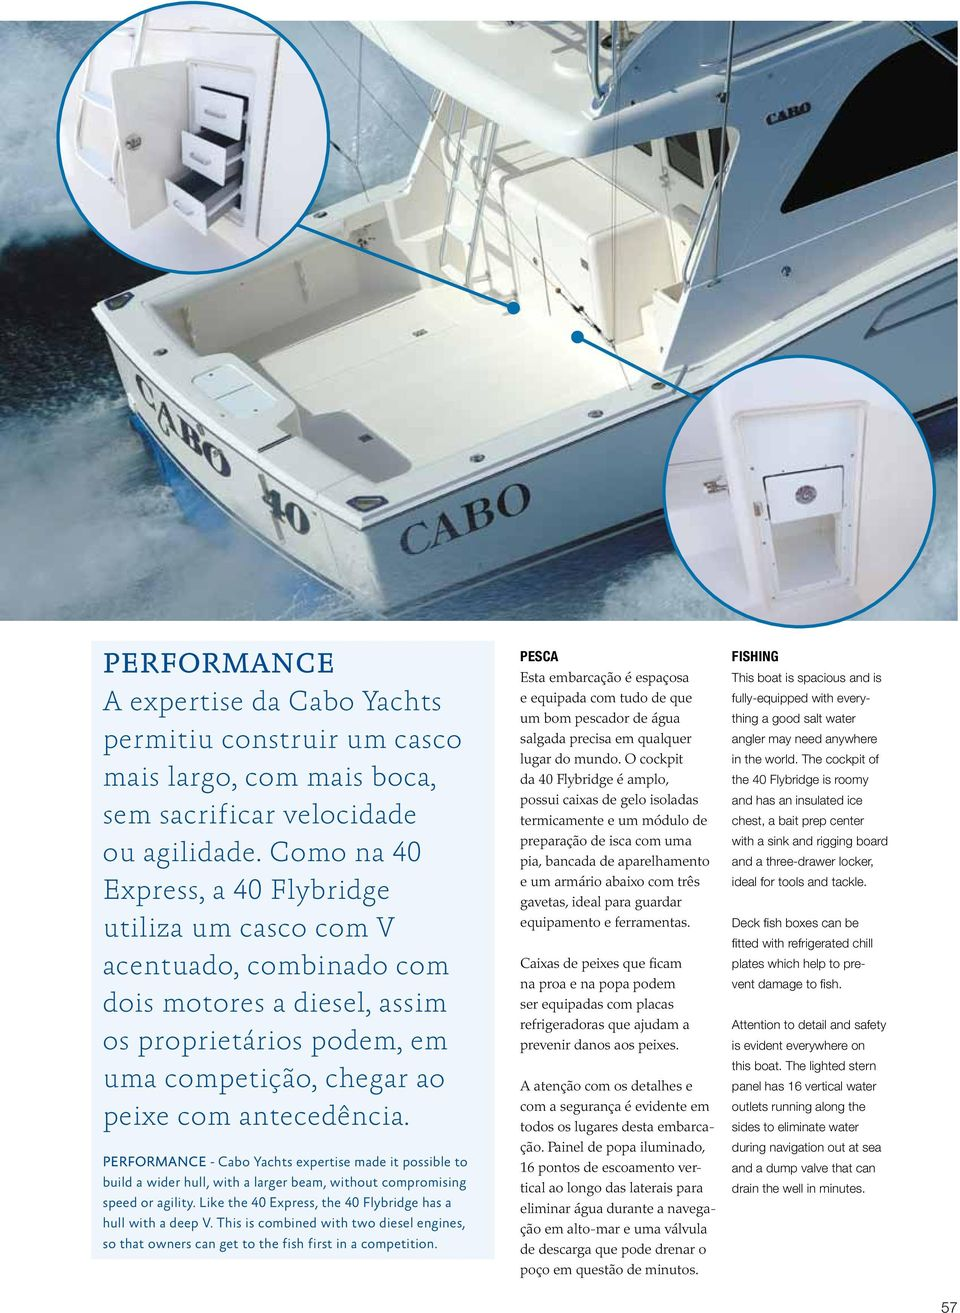 PERFORMANCE - Cabo Yachts expertise made it possible to build a wider hull, with a larger beam, without compromising speed or agility. Like the 40 Express, the 40 Flybridge has a hull with a deep V.